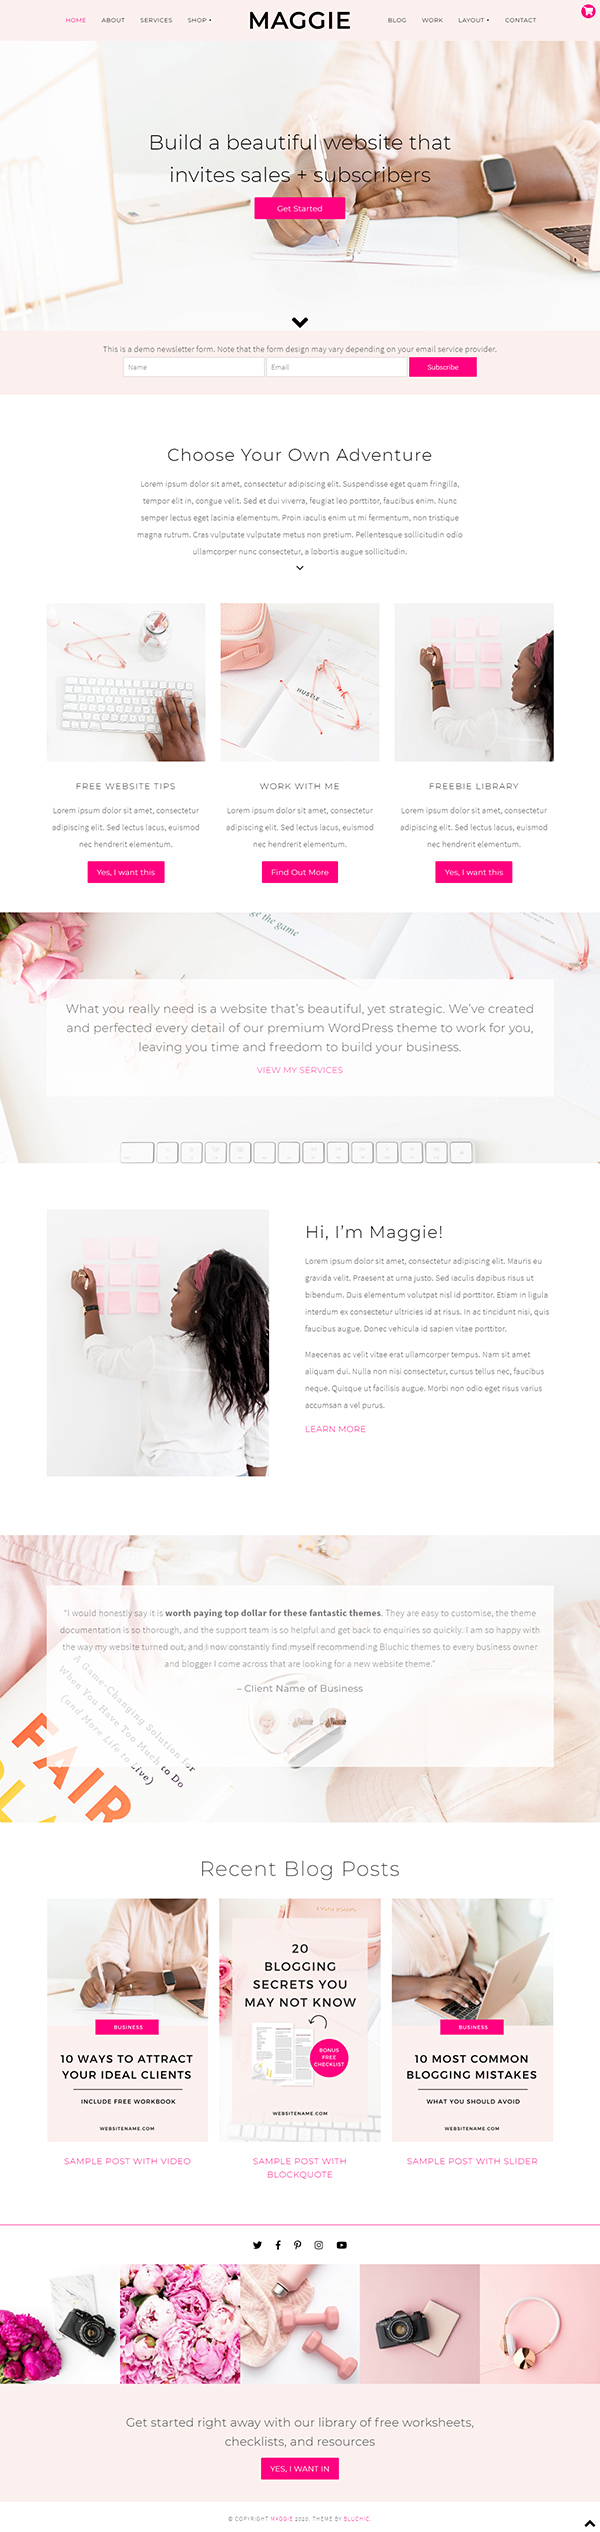 Maggie Feminine WordPress Theme